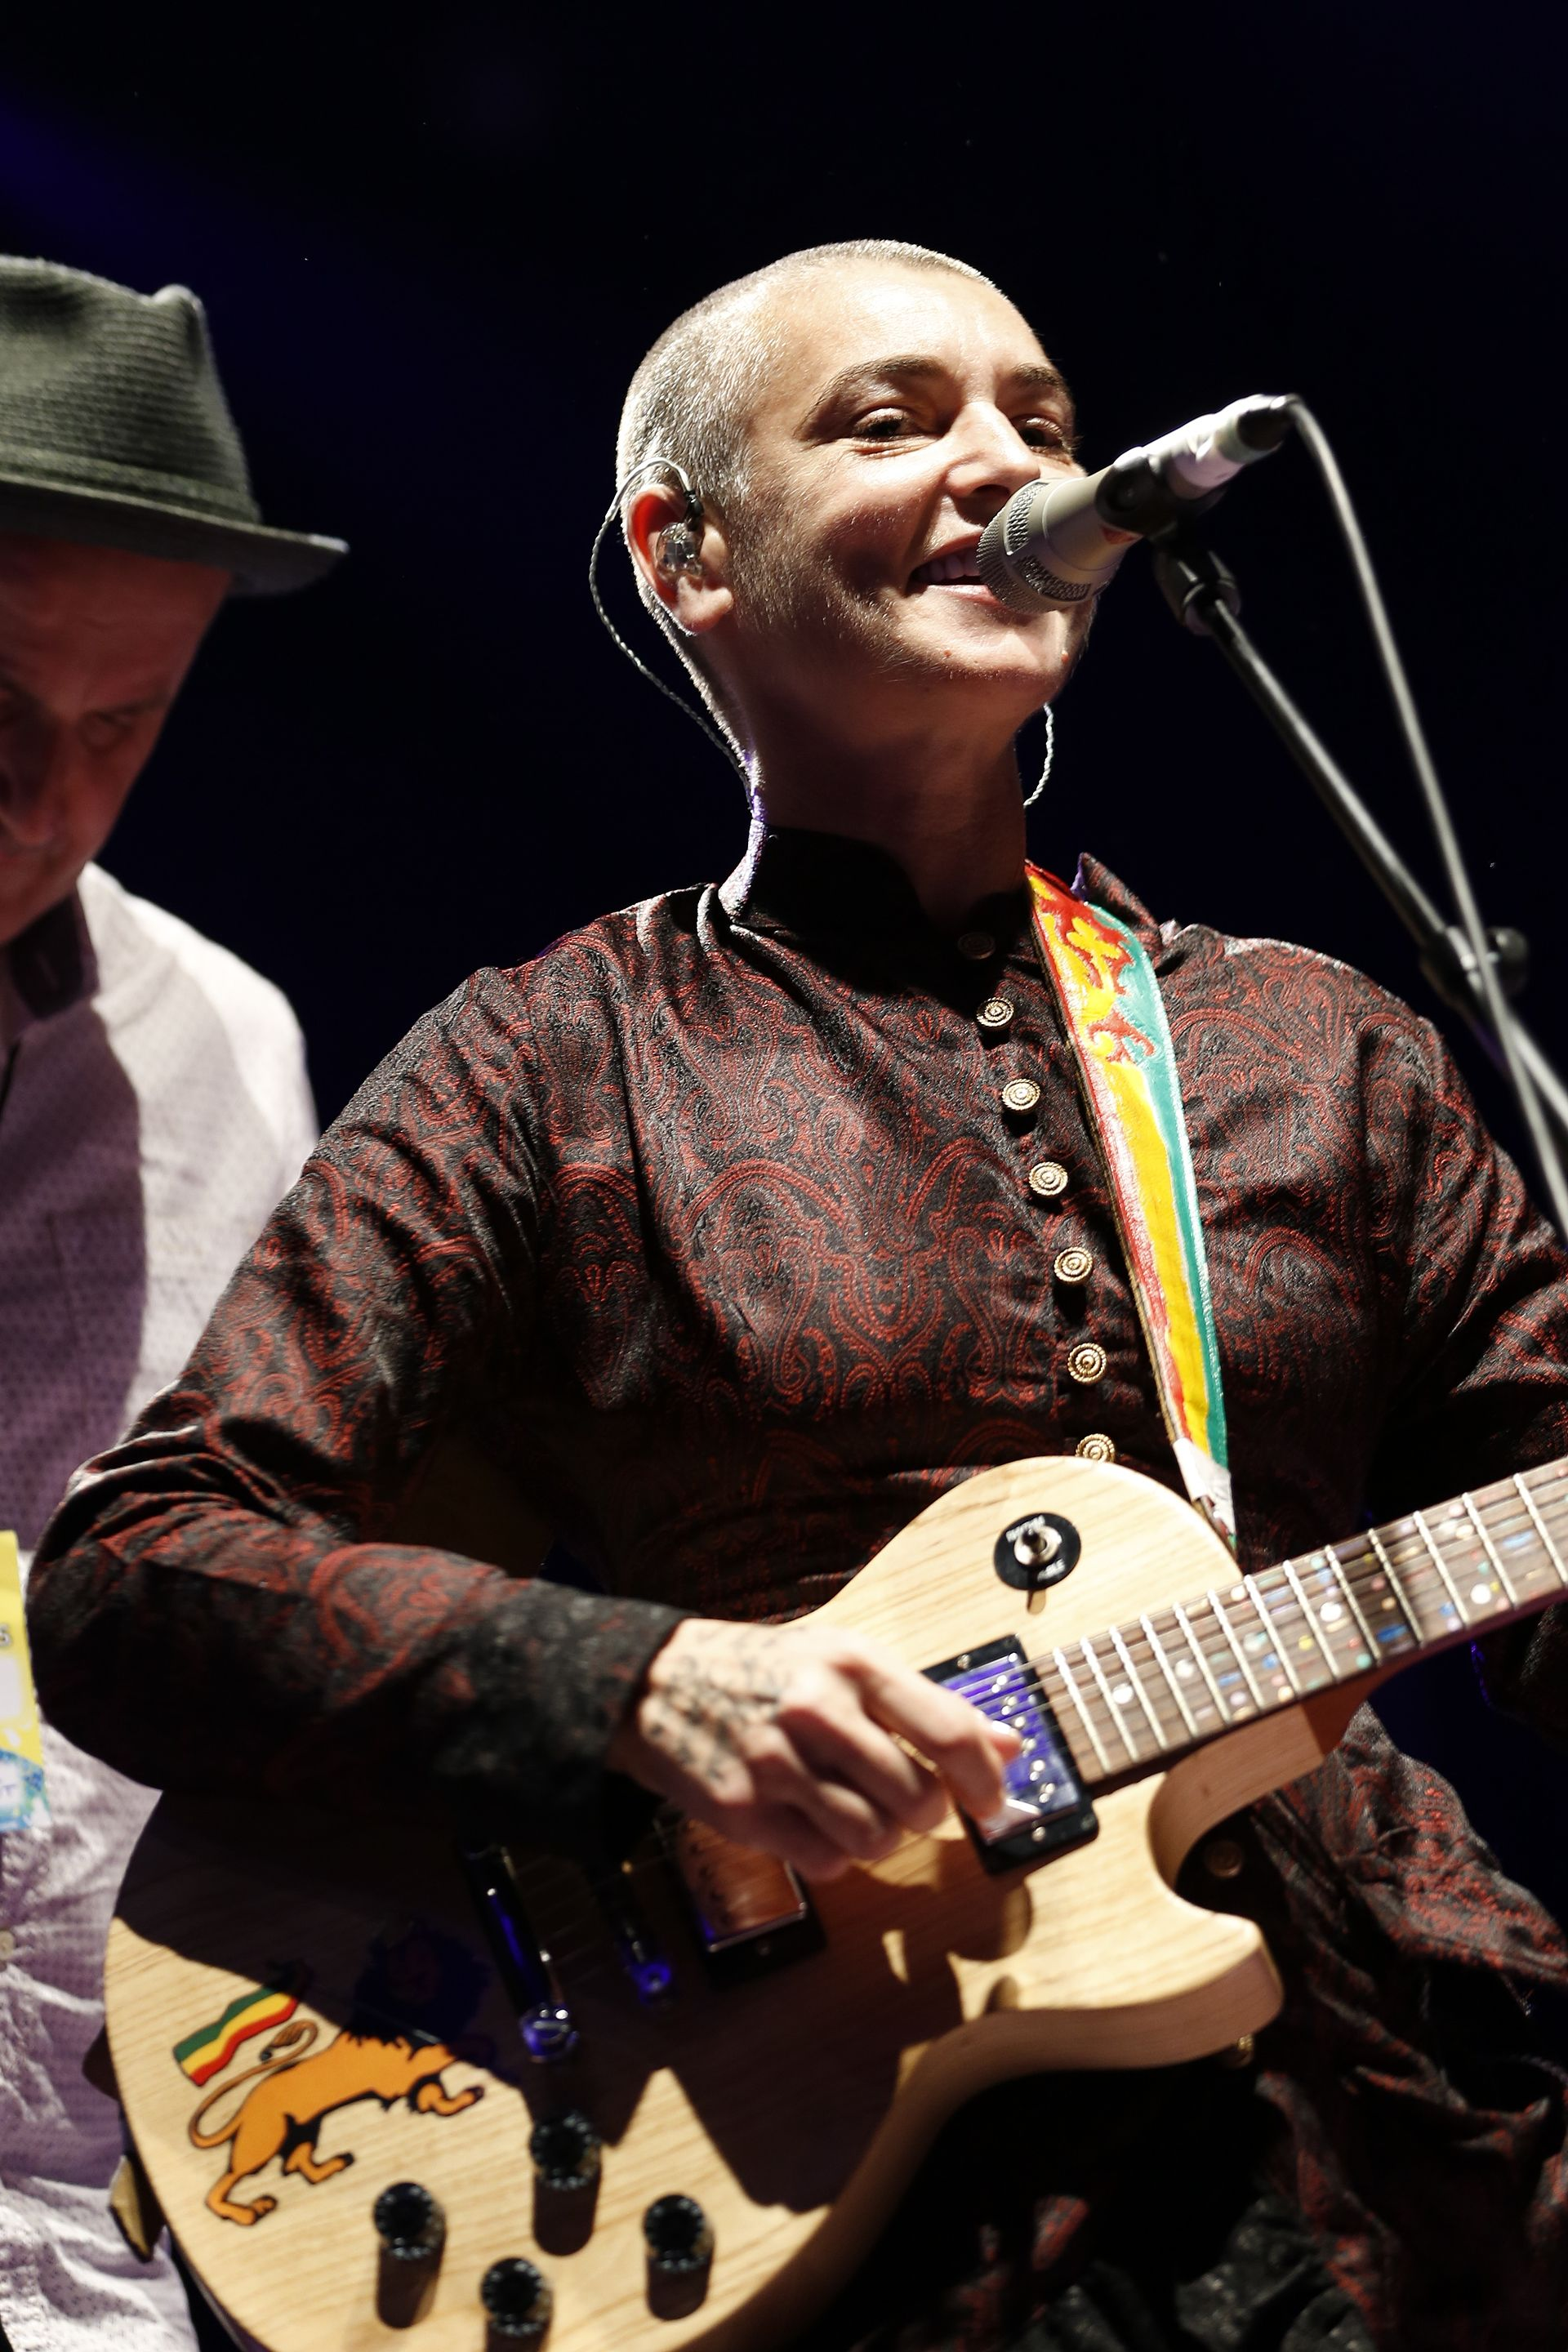 O To Ww Bing Comsquare Root 123: Sinéad O'Connor